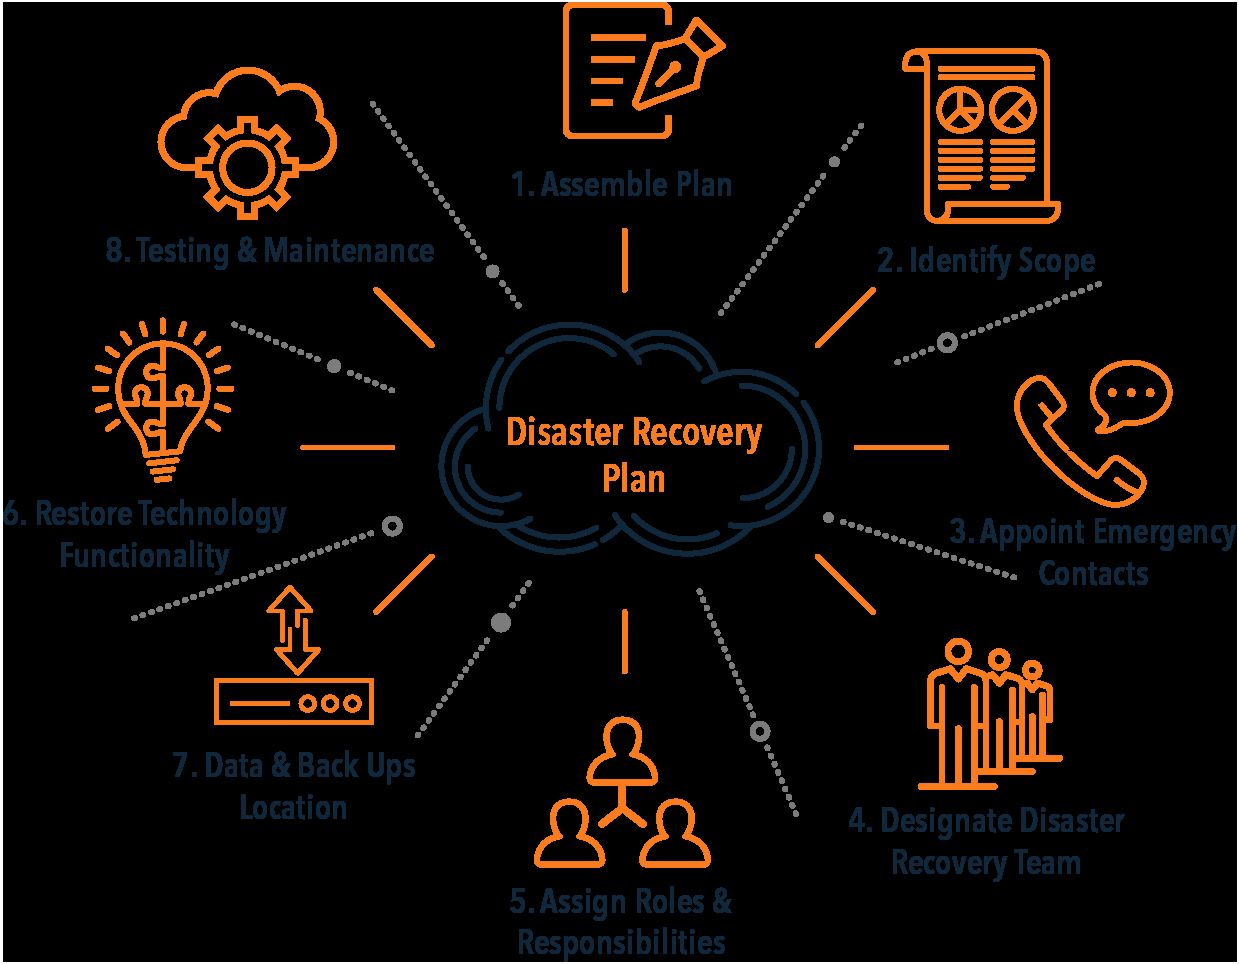 40 Disaster Recovery Plan Example Disaster recovery, How